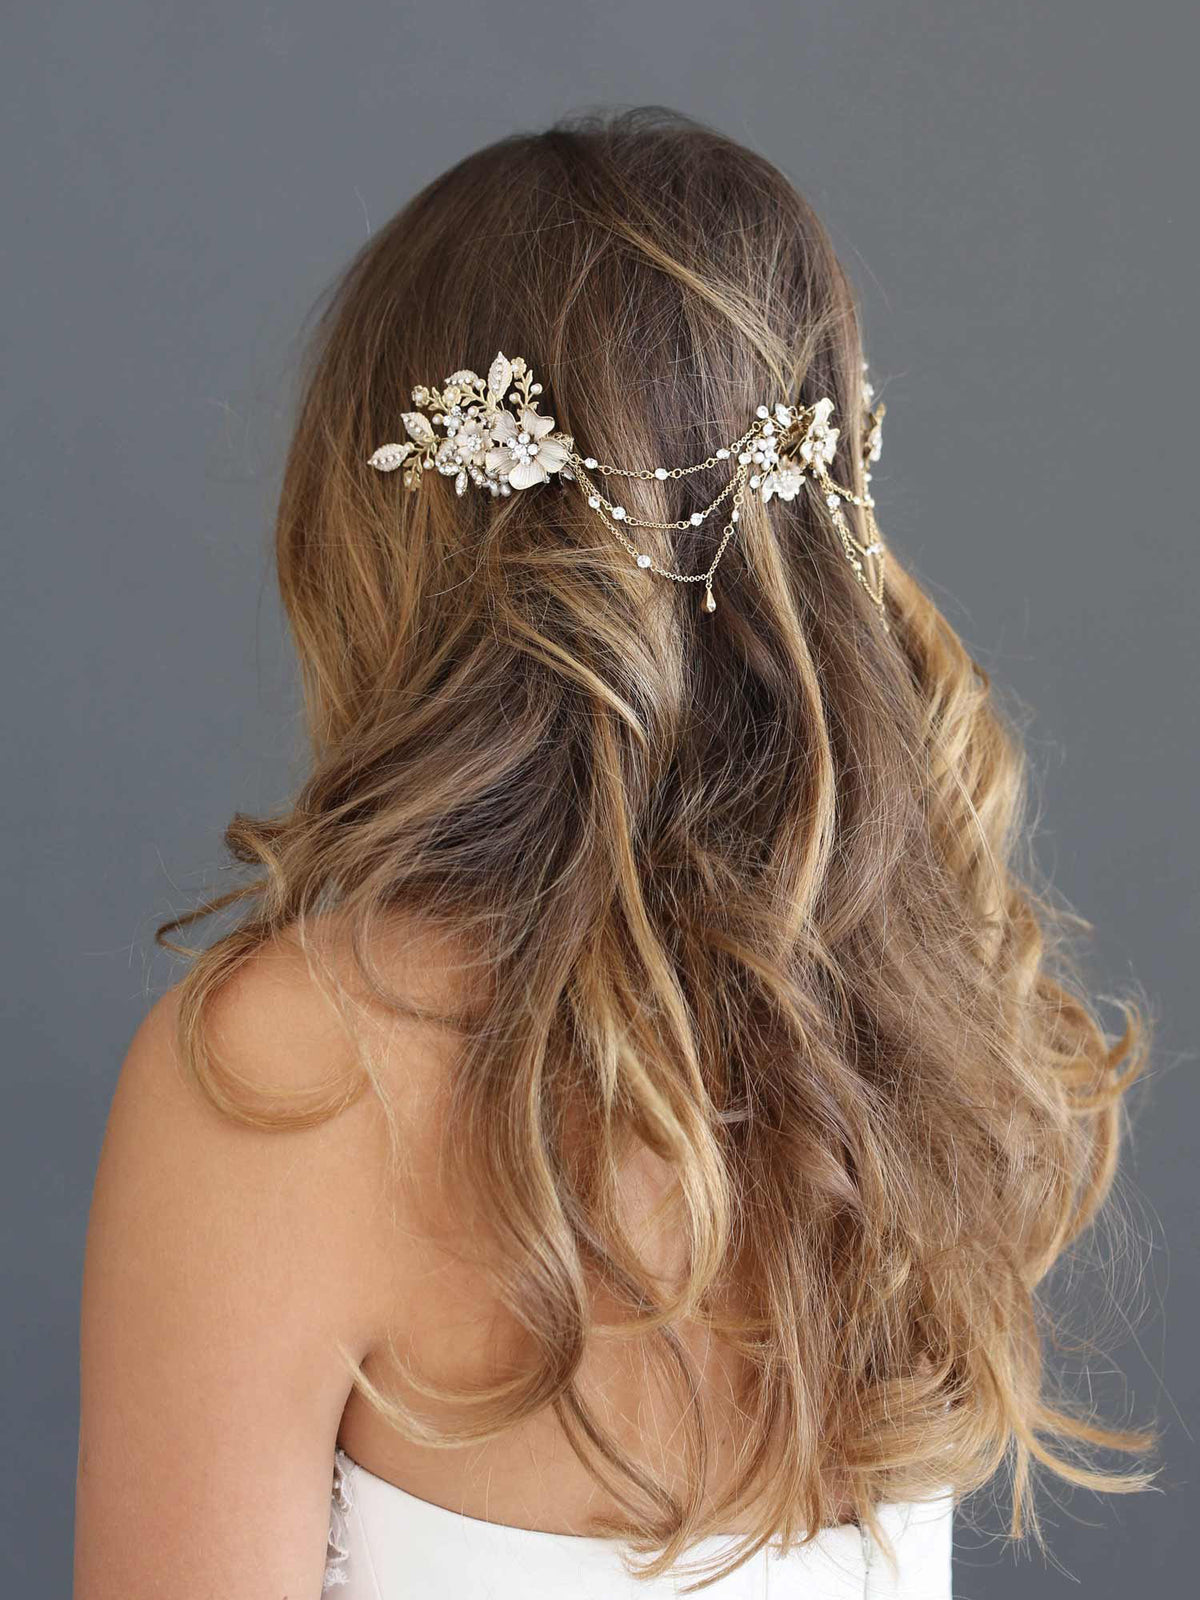 Rent Wedding Headpiece-Flower Cluster Swag Headpiece-Happily Ever Borrowed